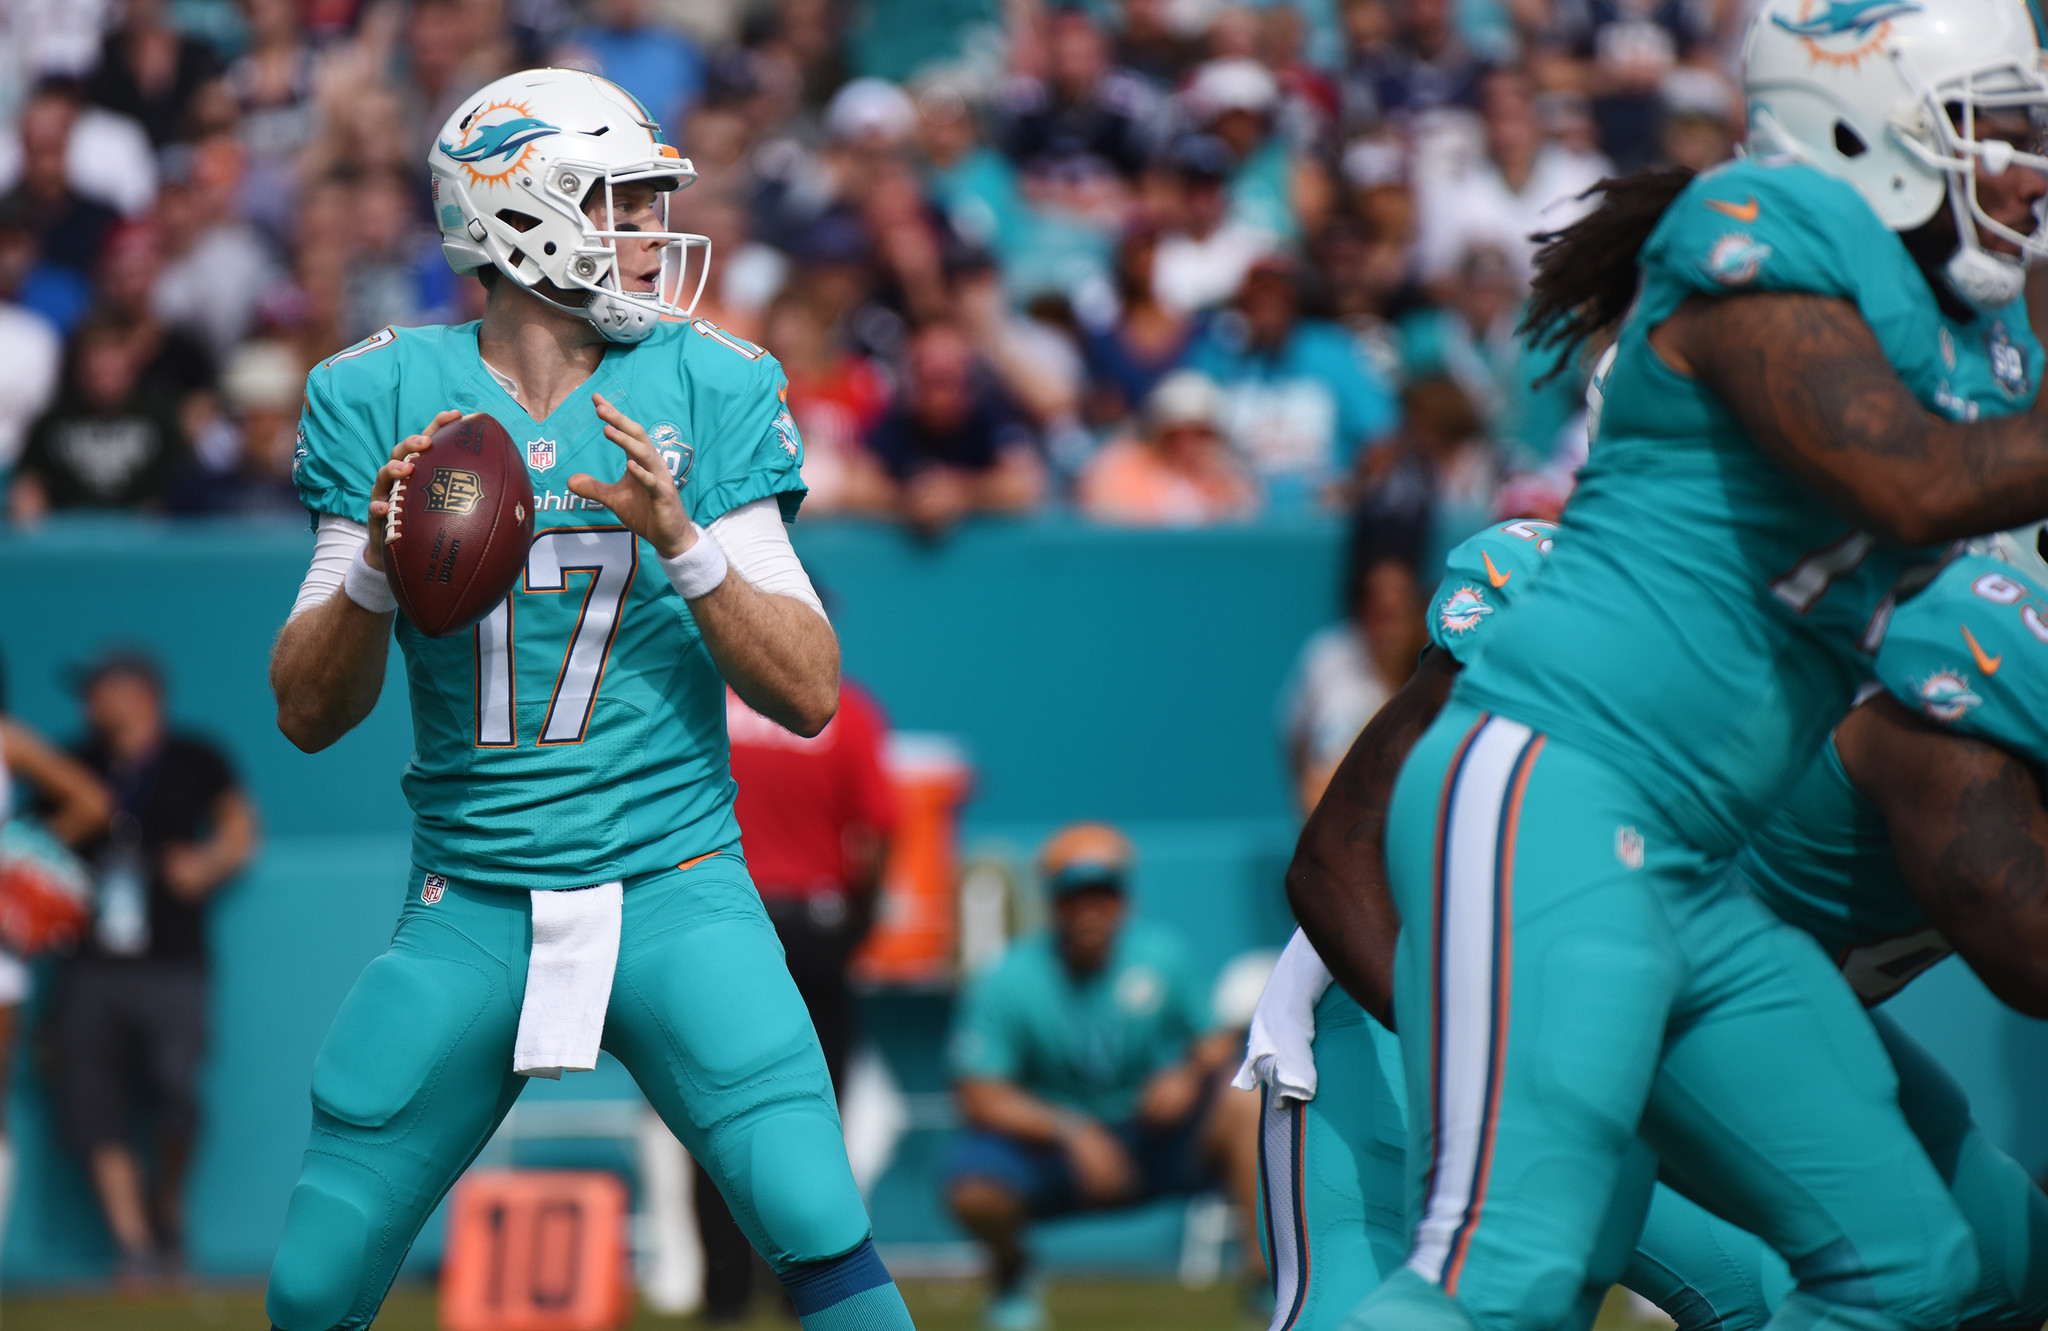 sfl-dolphins-could-make-playoffs-next-se